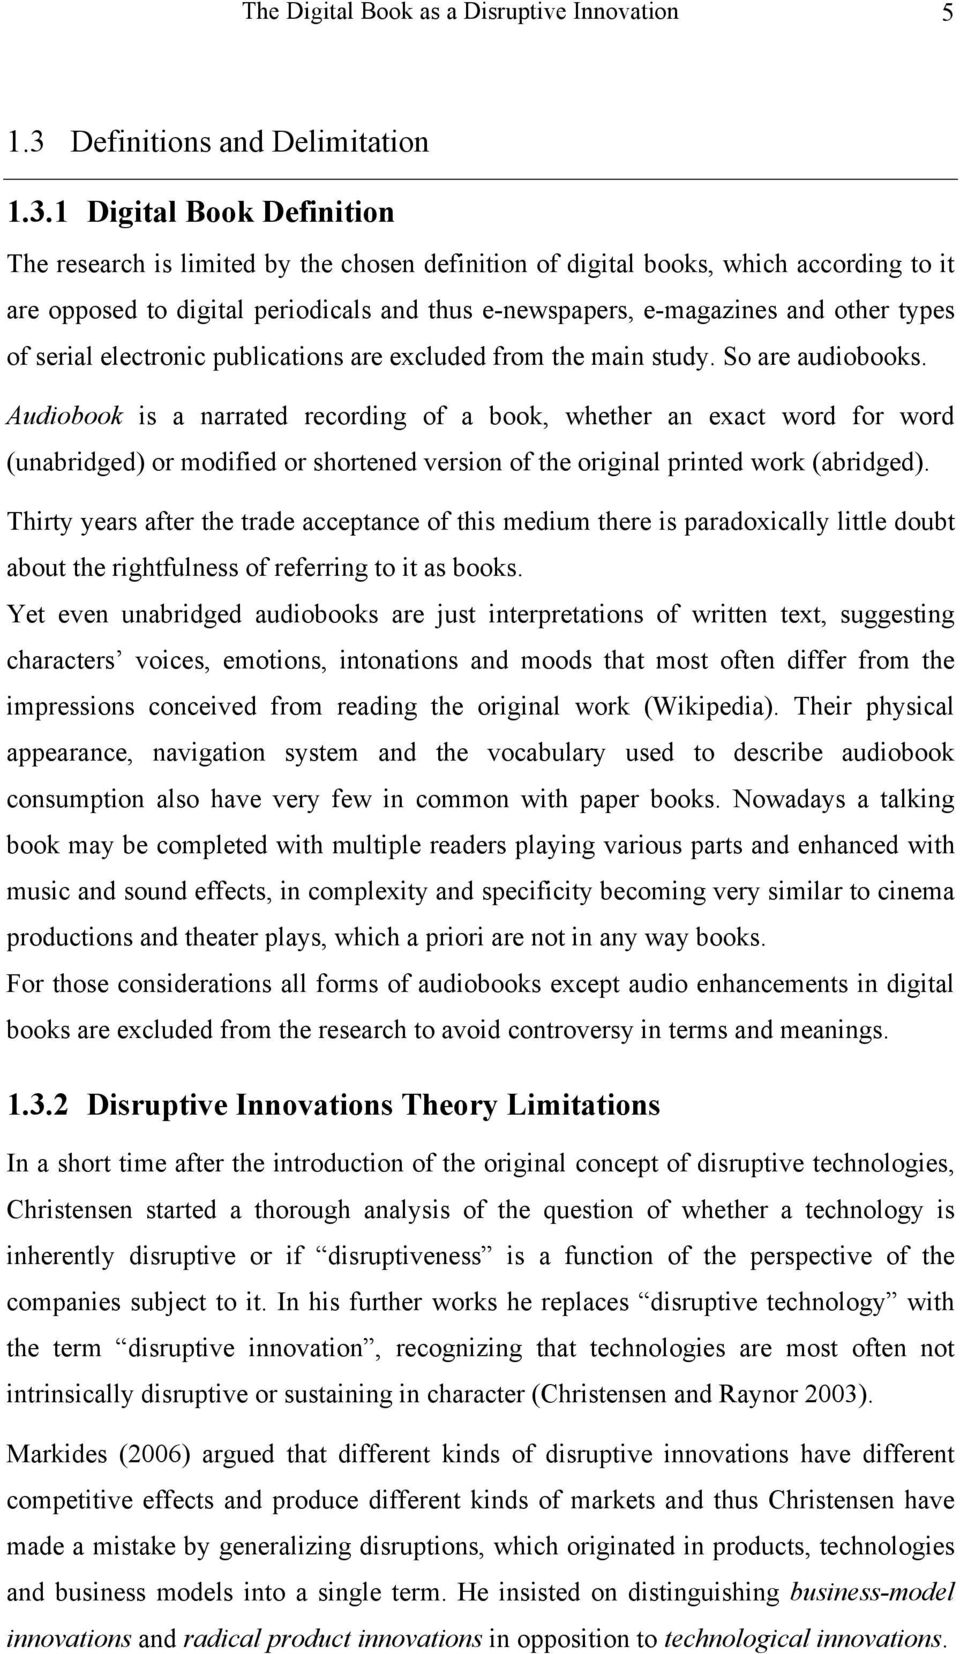 1 Digital Book Definition The research is limited by the chosen definition of digital books, which according to it are opposed to digital periodicals and thus e-newspapers, e-magazines and other